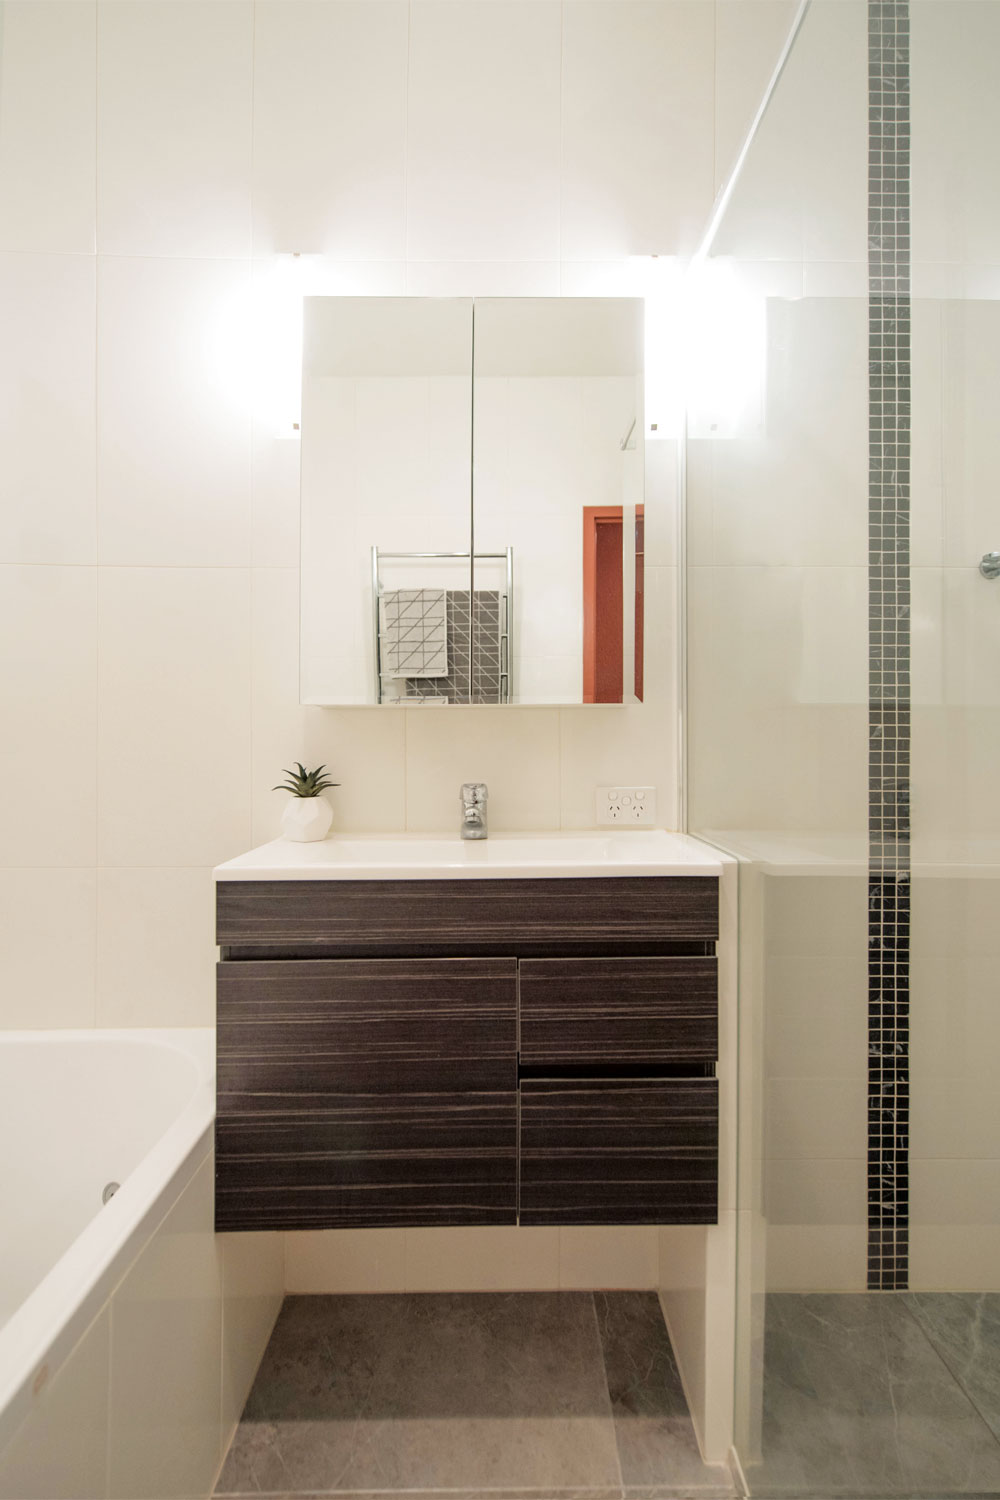 Sleek and sophisticated: choosing tiles for perfection